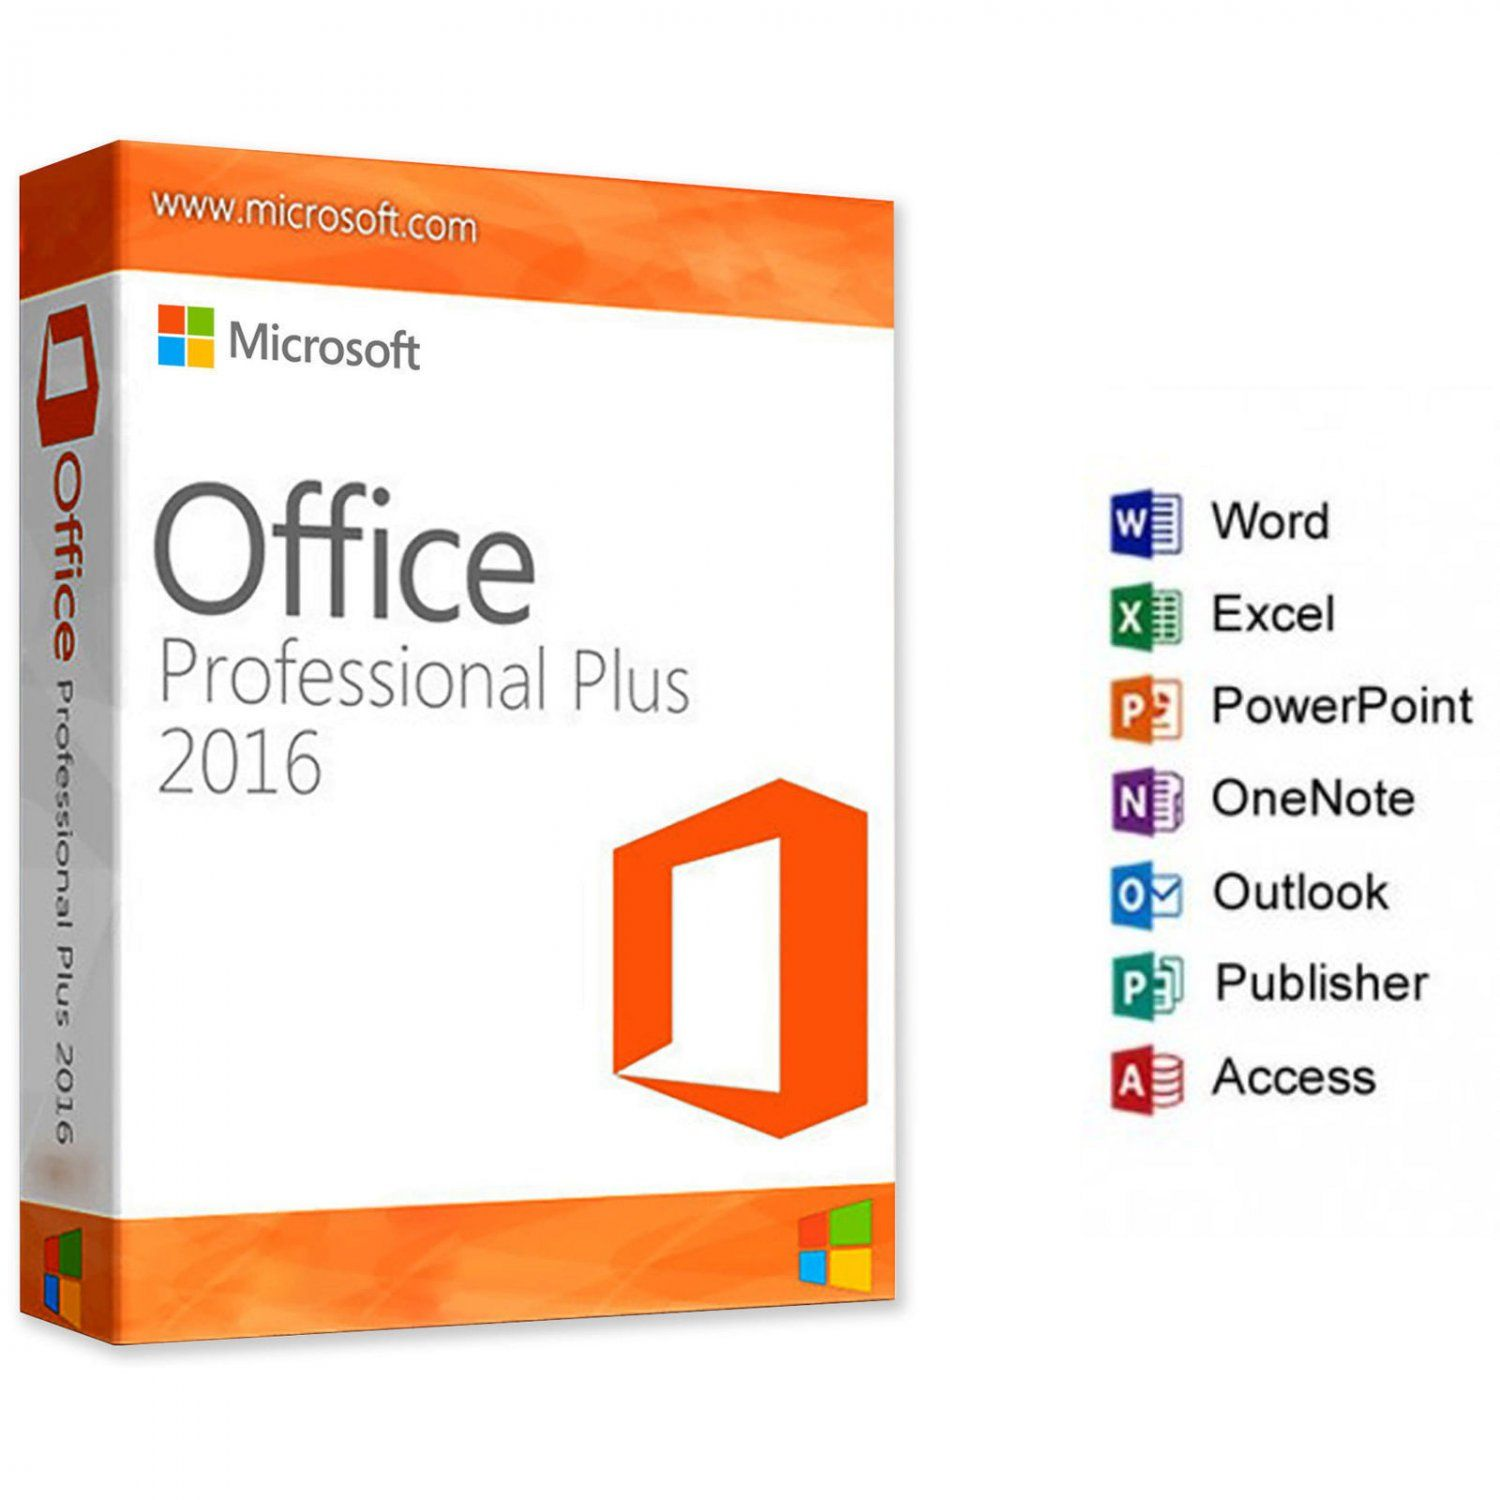 Office 2016 Professional Plus Genuine Product Key For 1 Pc Scrap